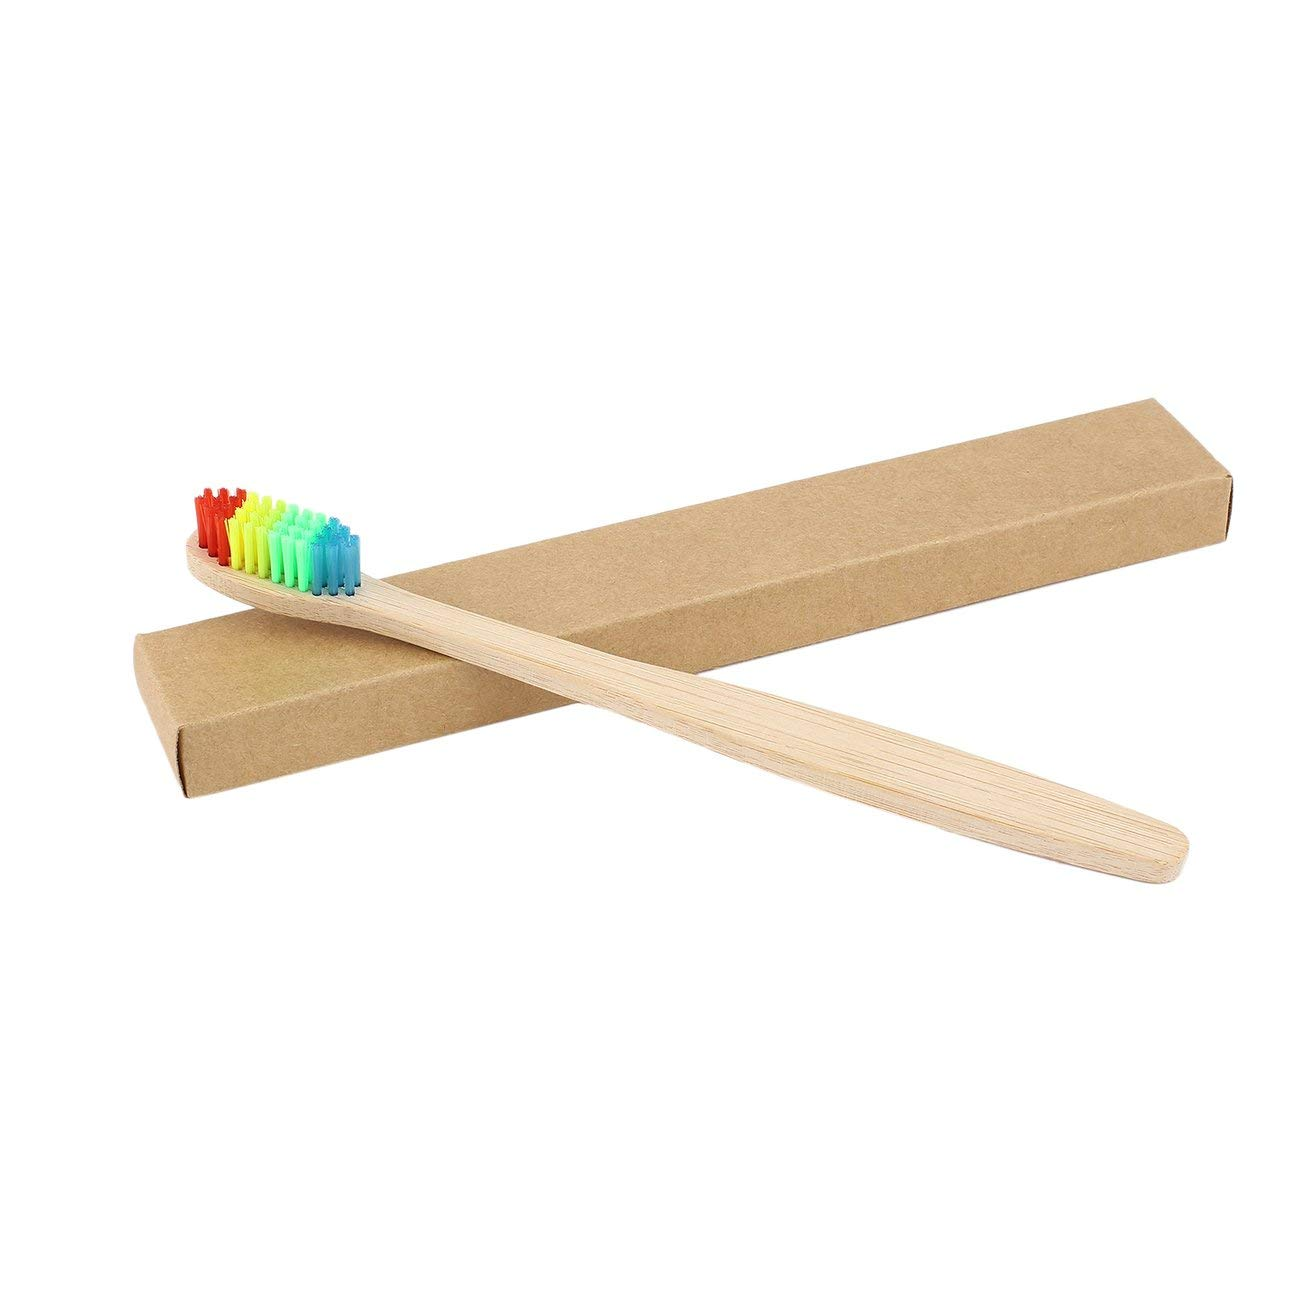 Liobaba Colorful Hair + Bamboo Handle Toothbrush Environment Wooden Rainbow Bamboo Toothbrush Oral Care Soft Bristle Unisex